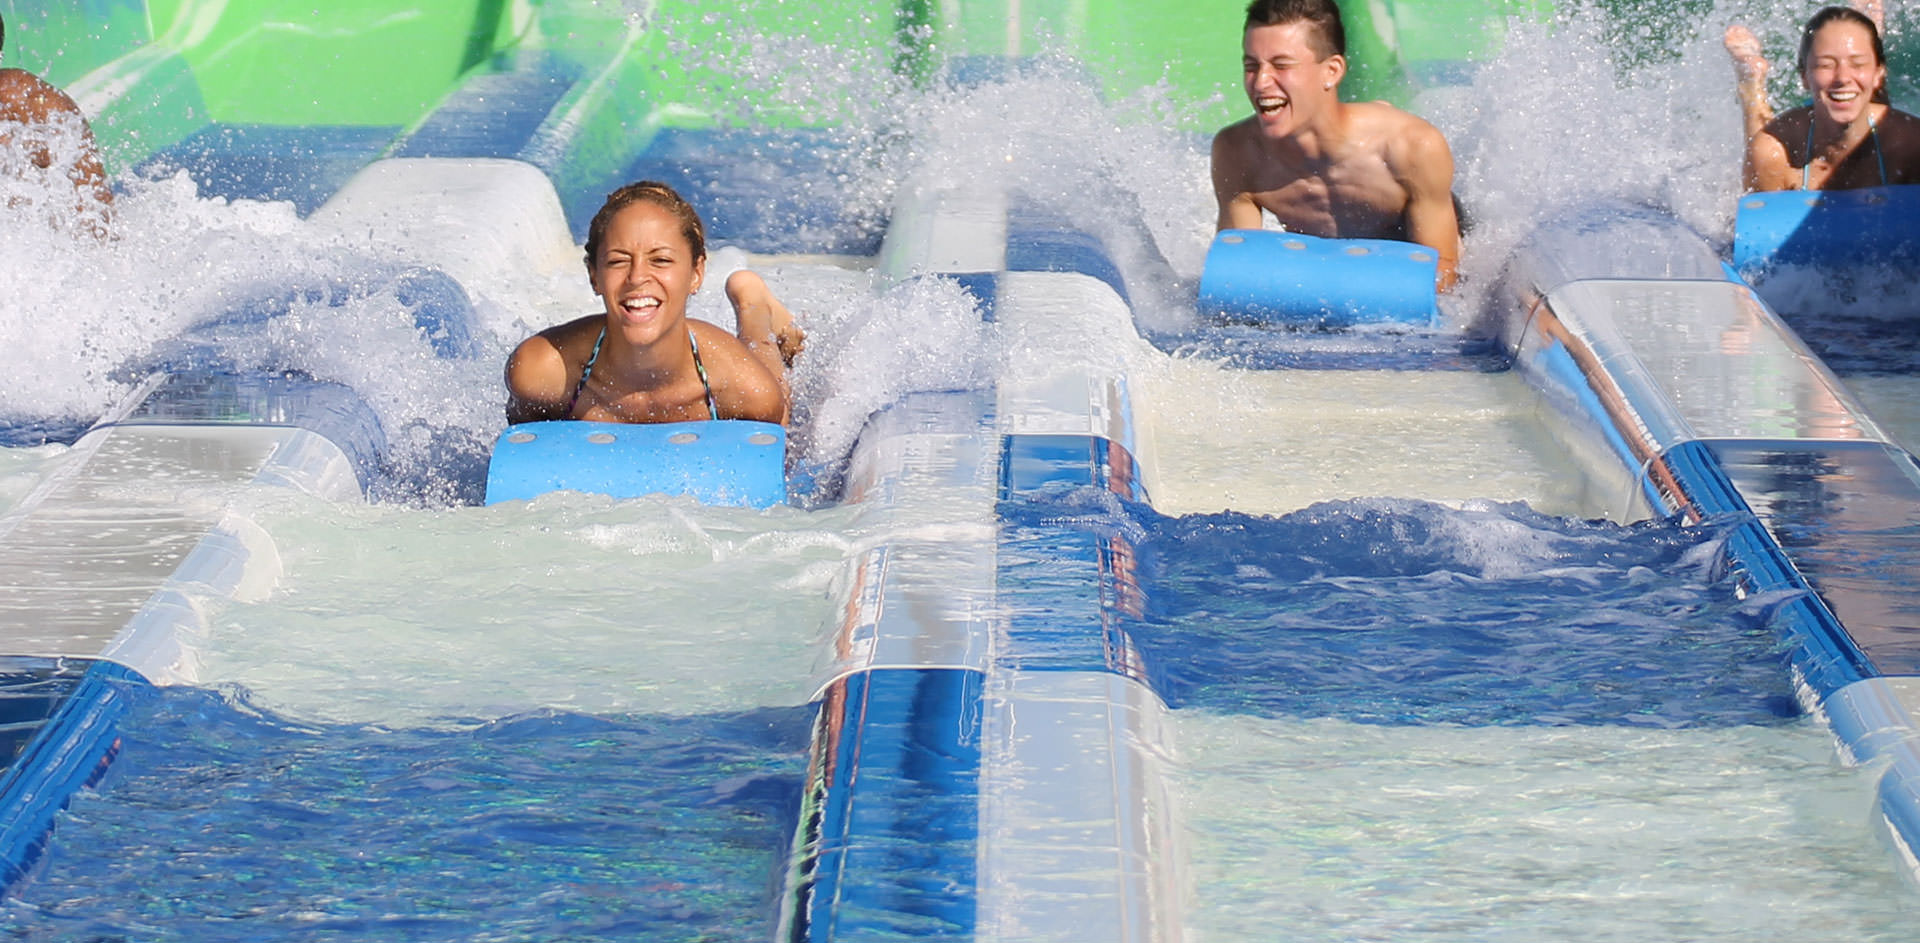 Multiple people going down waterslide ride and getting splashed with water.